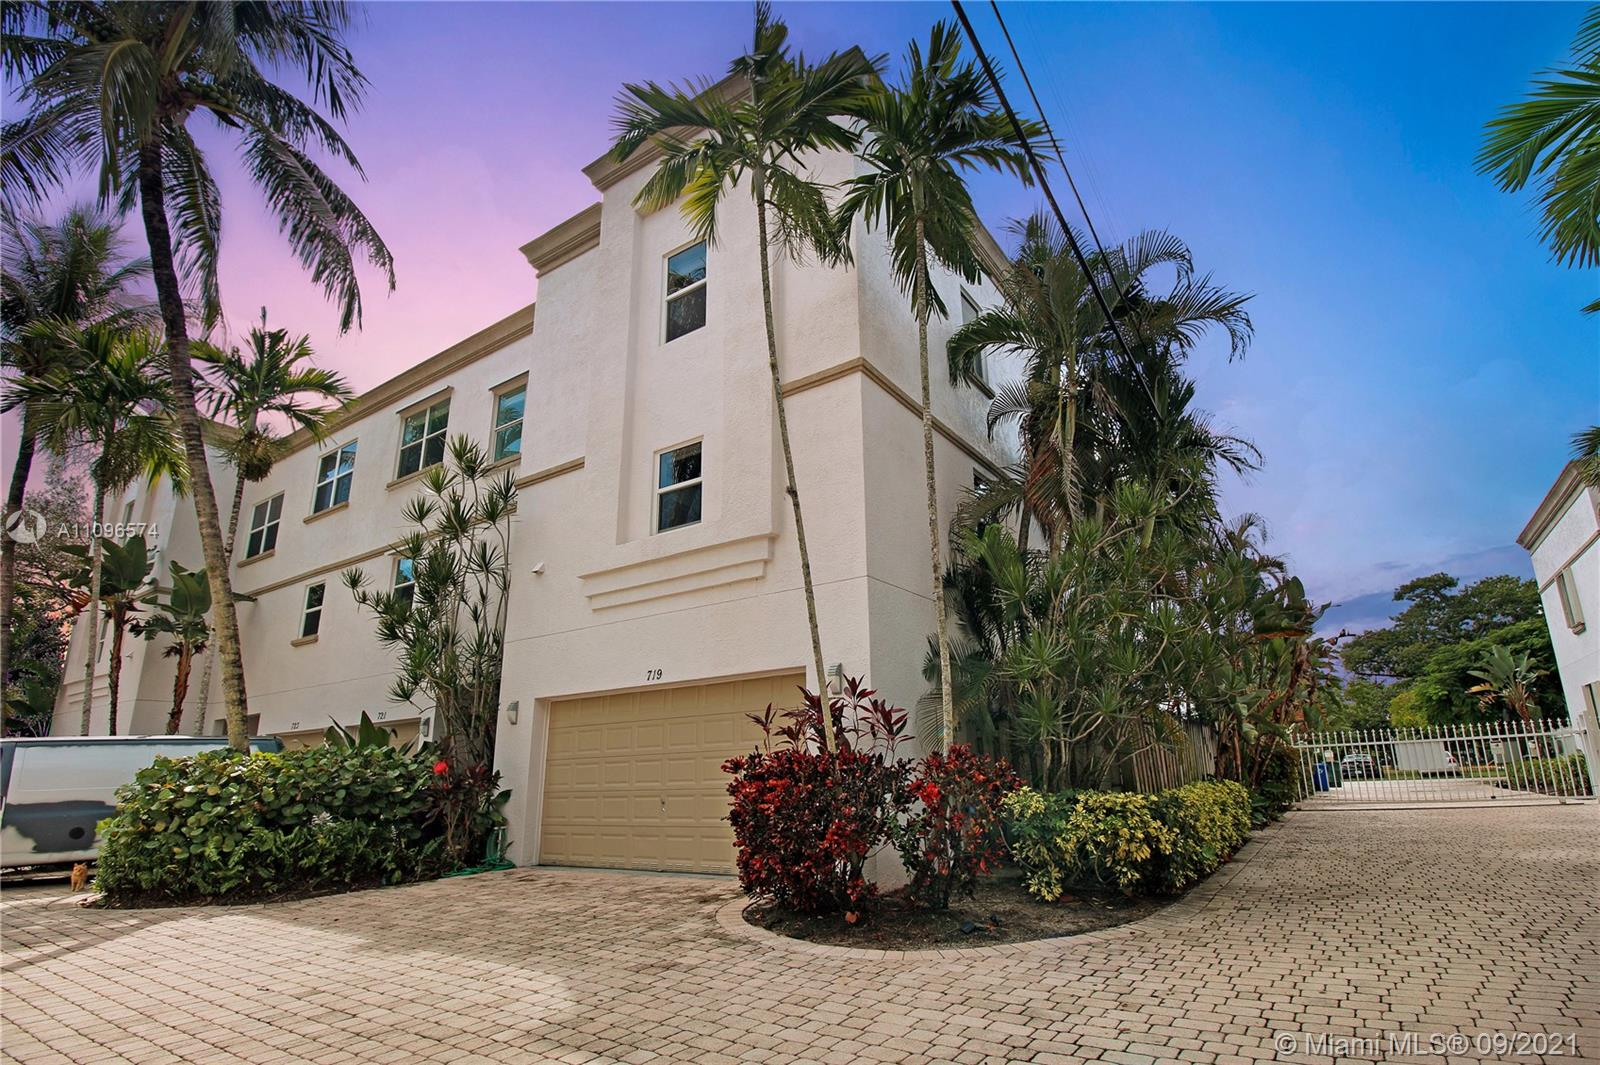 Rarely available spacious 2/2.5 townhome in highly sought after Tarpon River! This beautiful corner unit has it all including a 2 car garage! Ground level features 1 bedroom with ensuite bath, large walk in closet, & private tranquil patio area! Second floor is perfect for entertaining with open kitchen, and huge family & dining room combination. Washer & dryer is conveniently located off kitchen and NOT in the garage like many other homes in this area! Third floor is exclusive to the master bedroom & bath, with its own private roof top balcony over looking the city! Home features all new impact windows installed in 2019, brand new 2021 water heater, newer 2016 AC, & 2019 GE stainless steel profile appliances. Community is gated & features an exclusive pool area shared by only 12 homes!